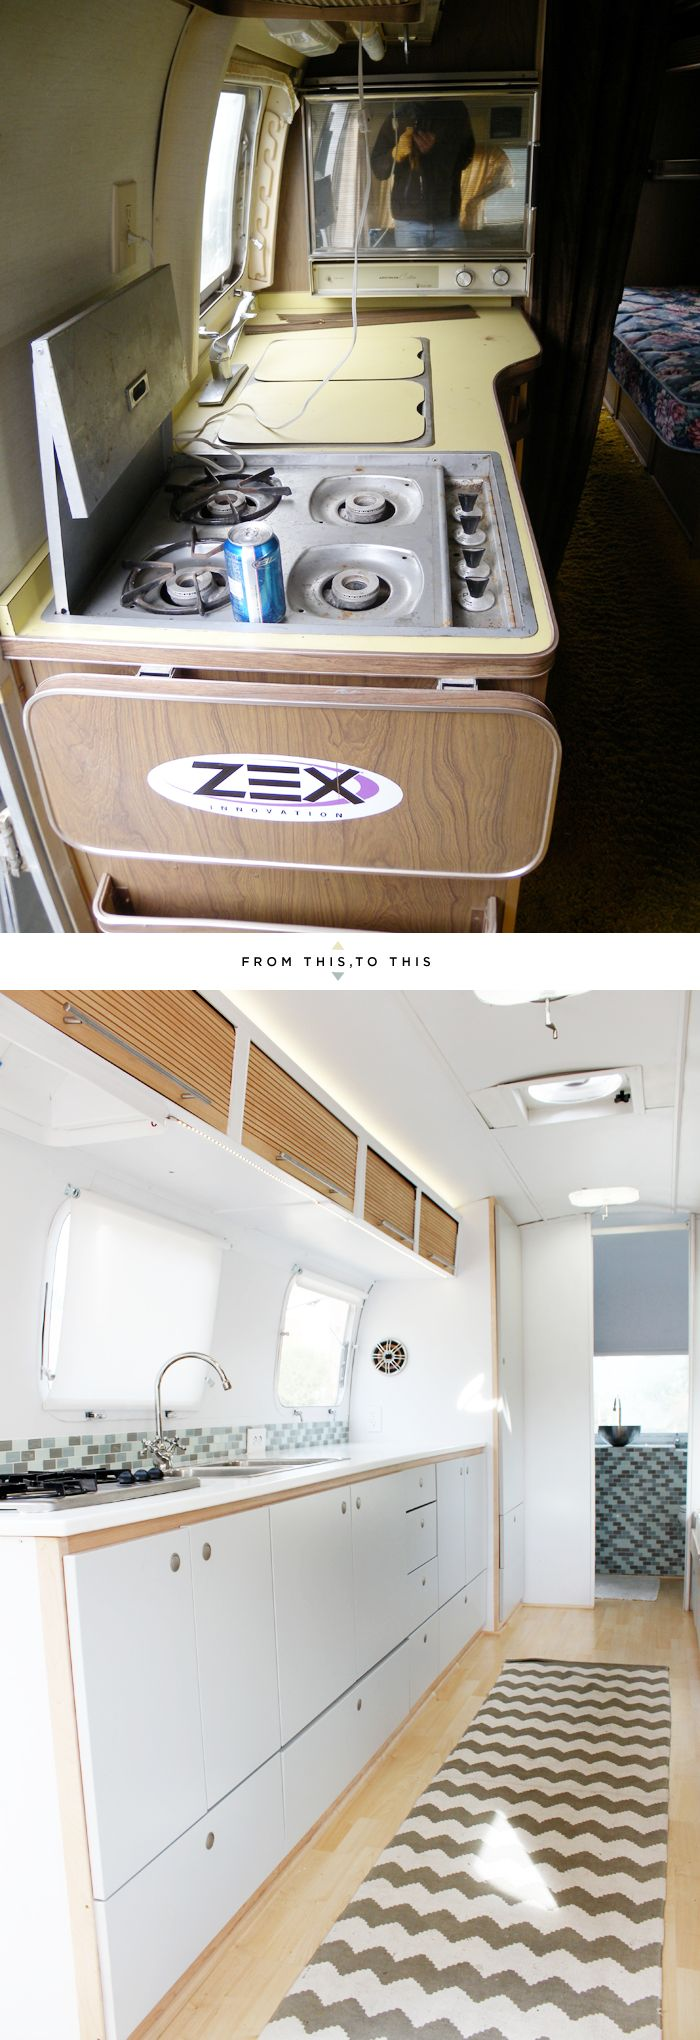 http://www.replacementtrailerparts.com/trailercabinets.php has some info on how to locate cabinets for various types of enclosed trailers.